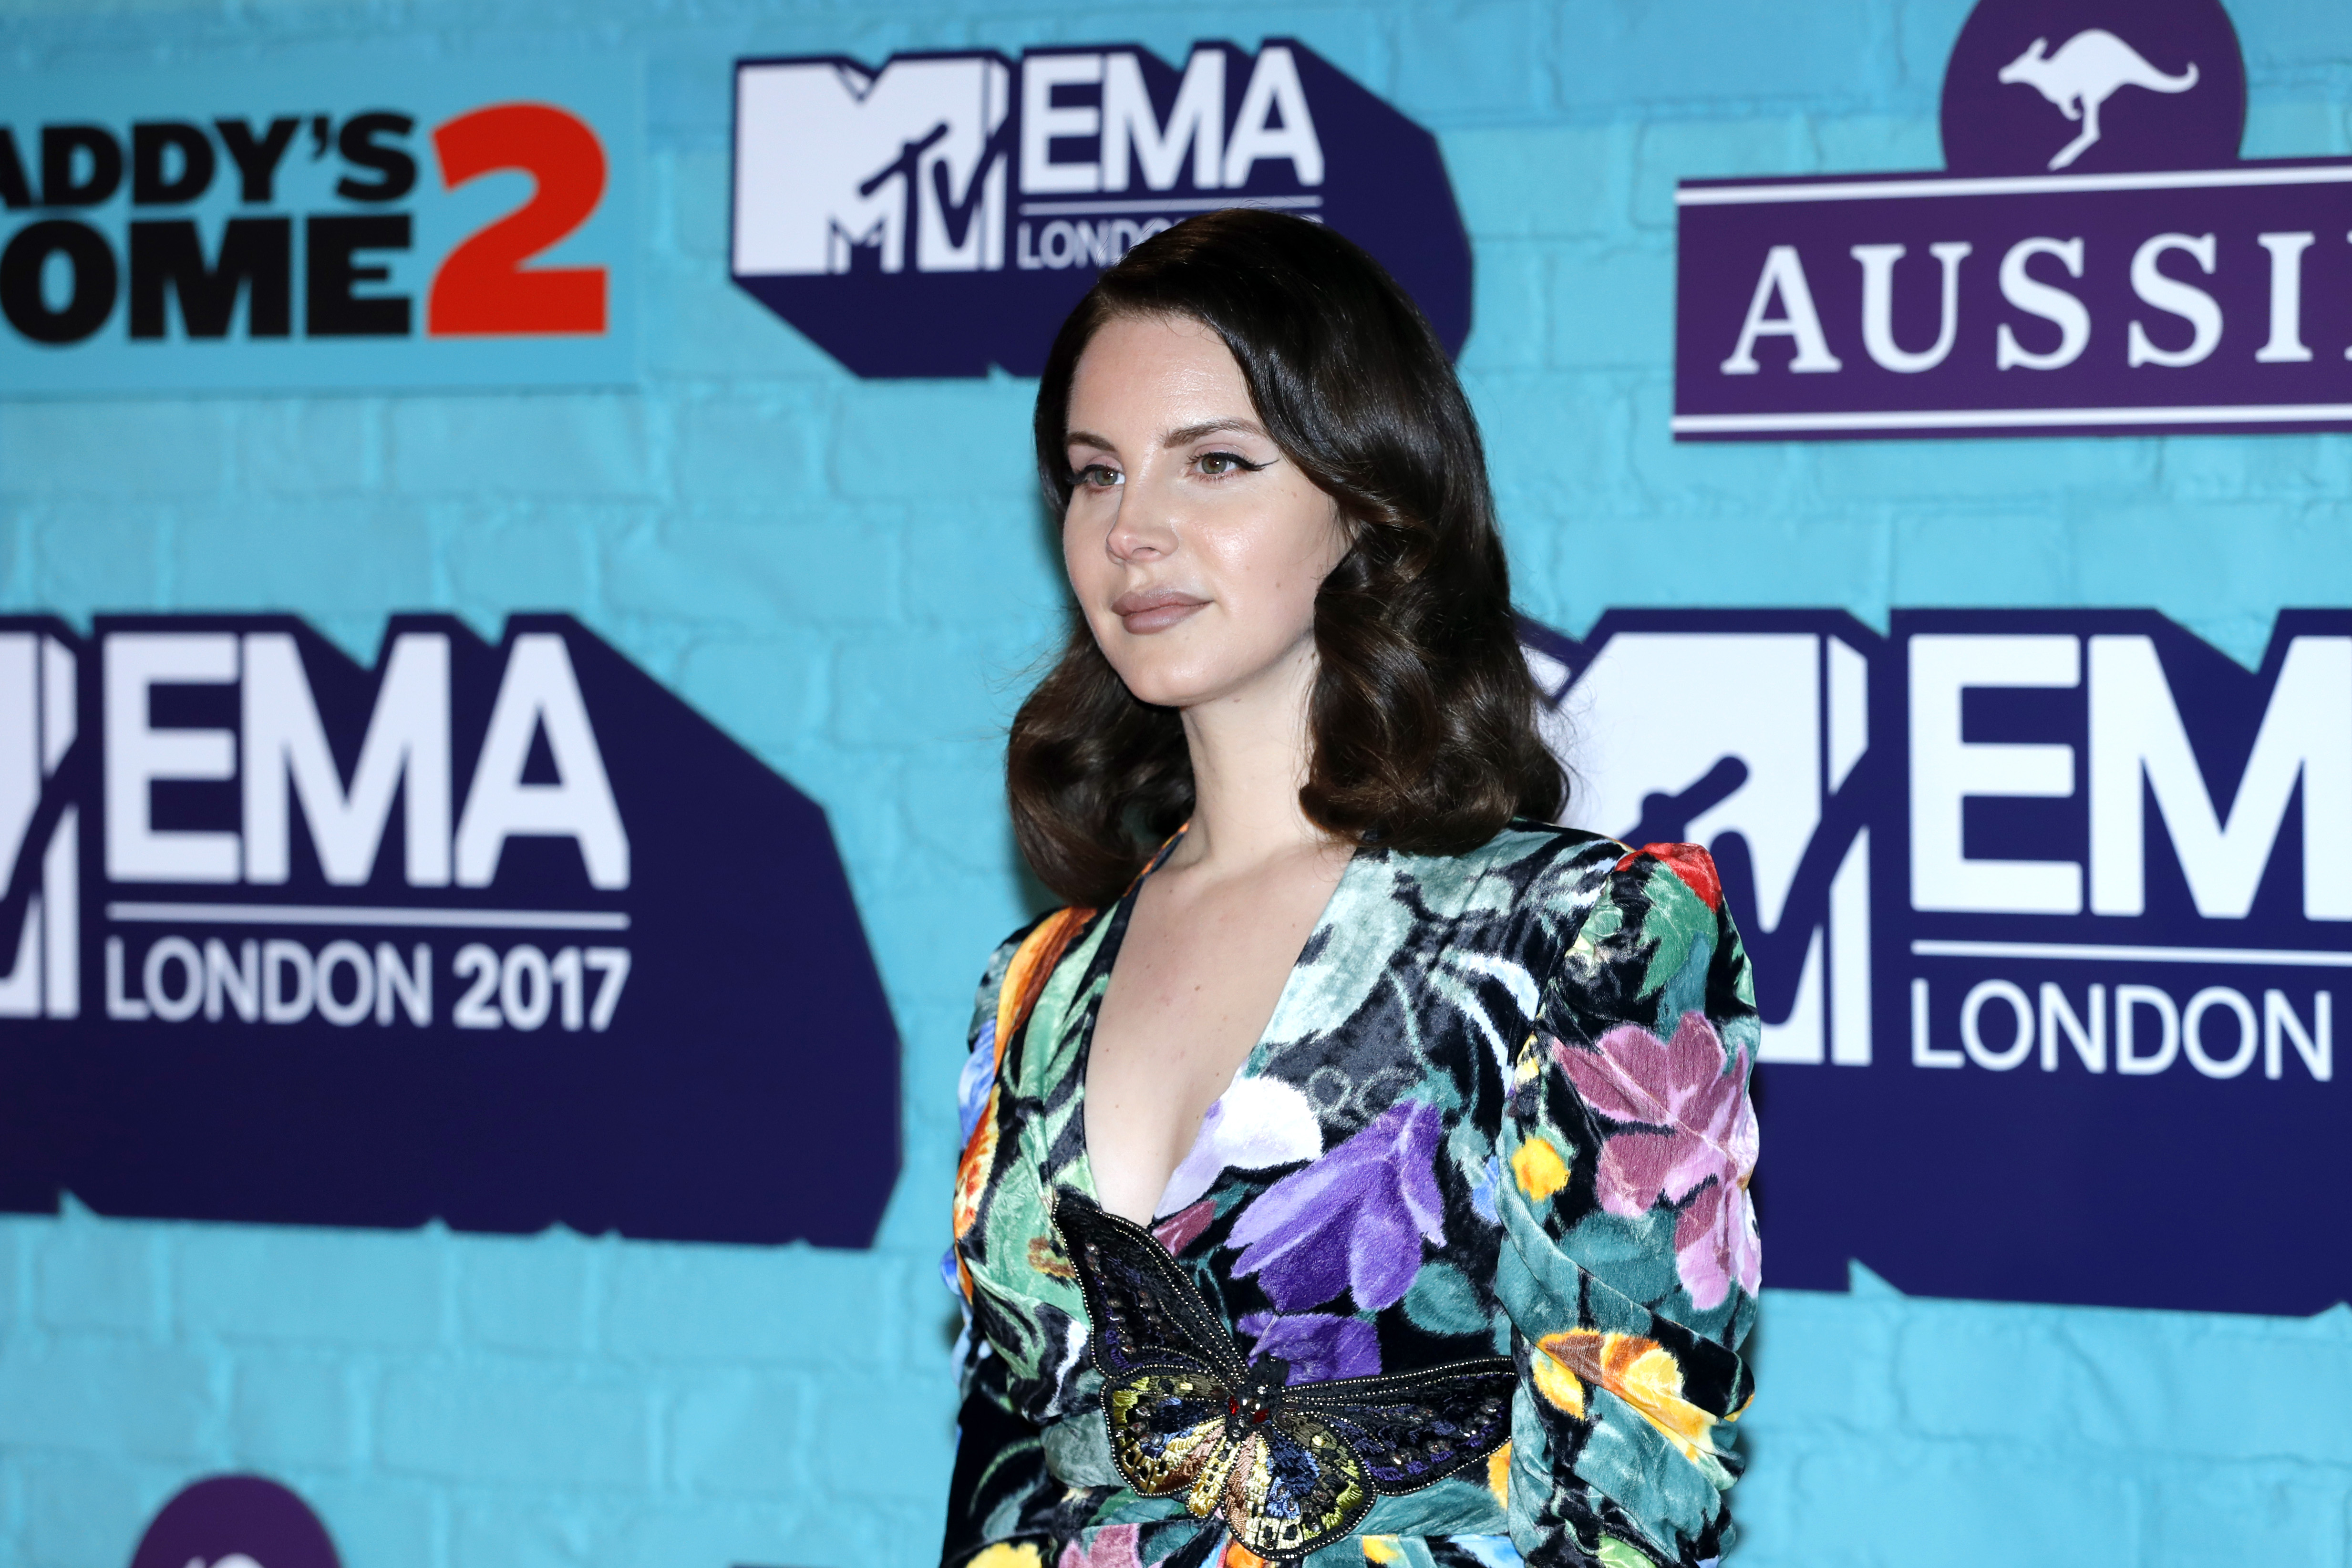 Lana Del Rey attends the MTV EMAs 2017 held at The SSE Arena, Wembley on November 12, 2017 in London, England.